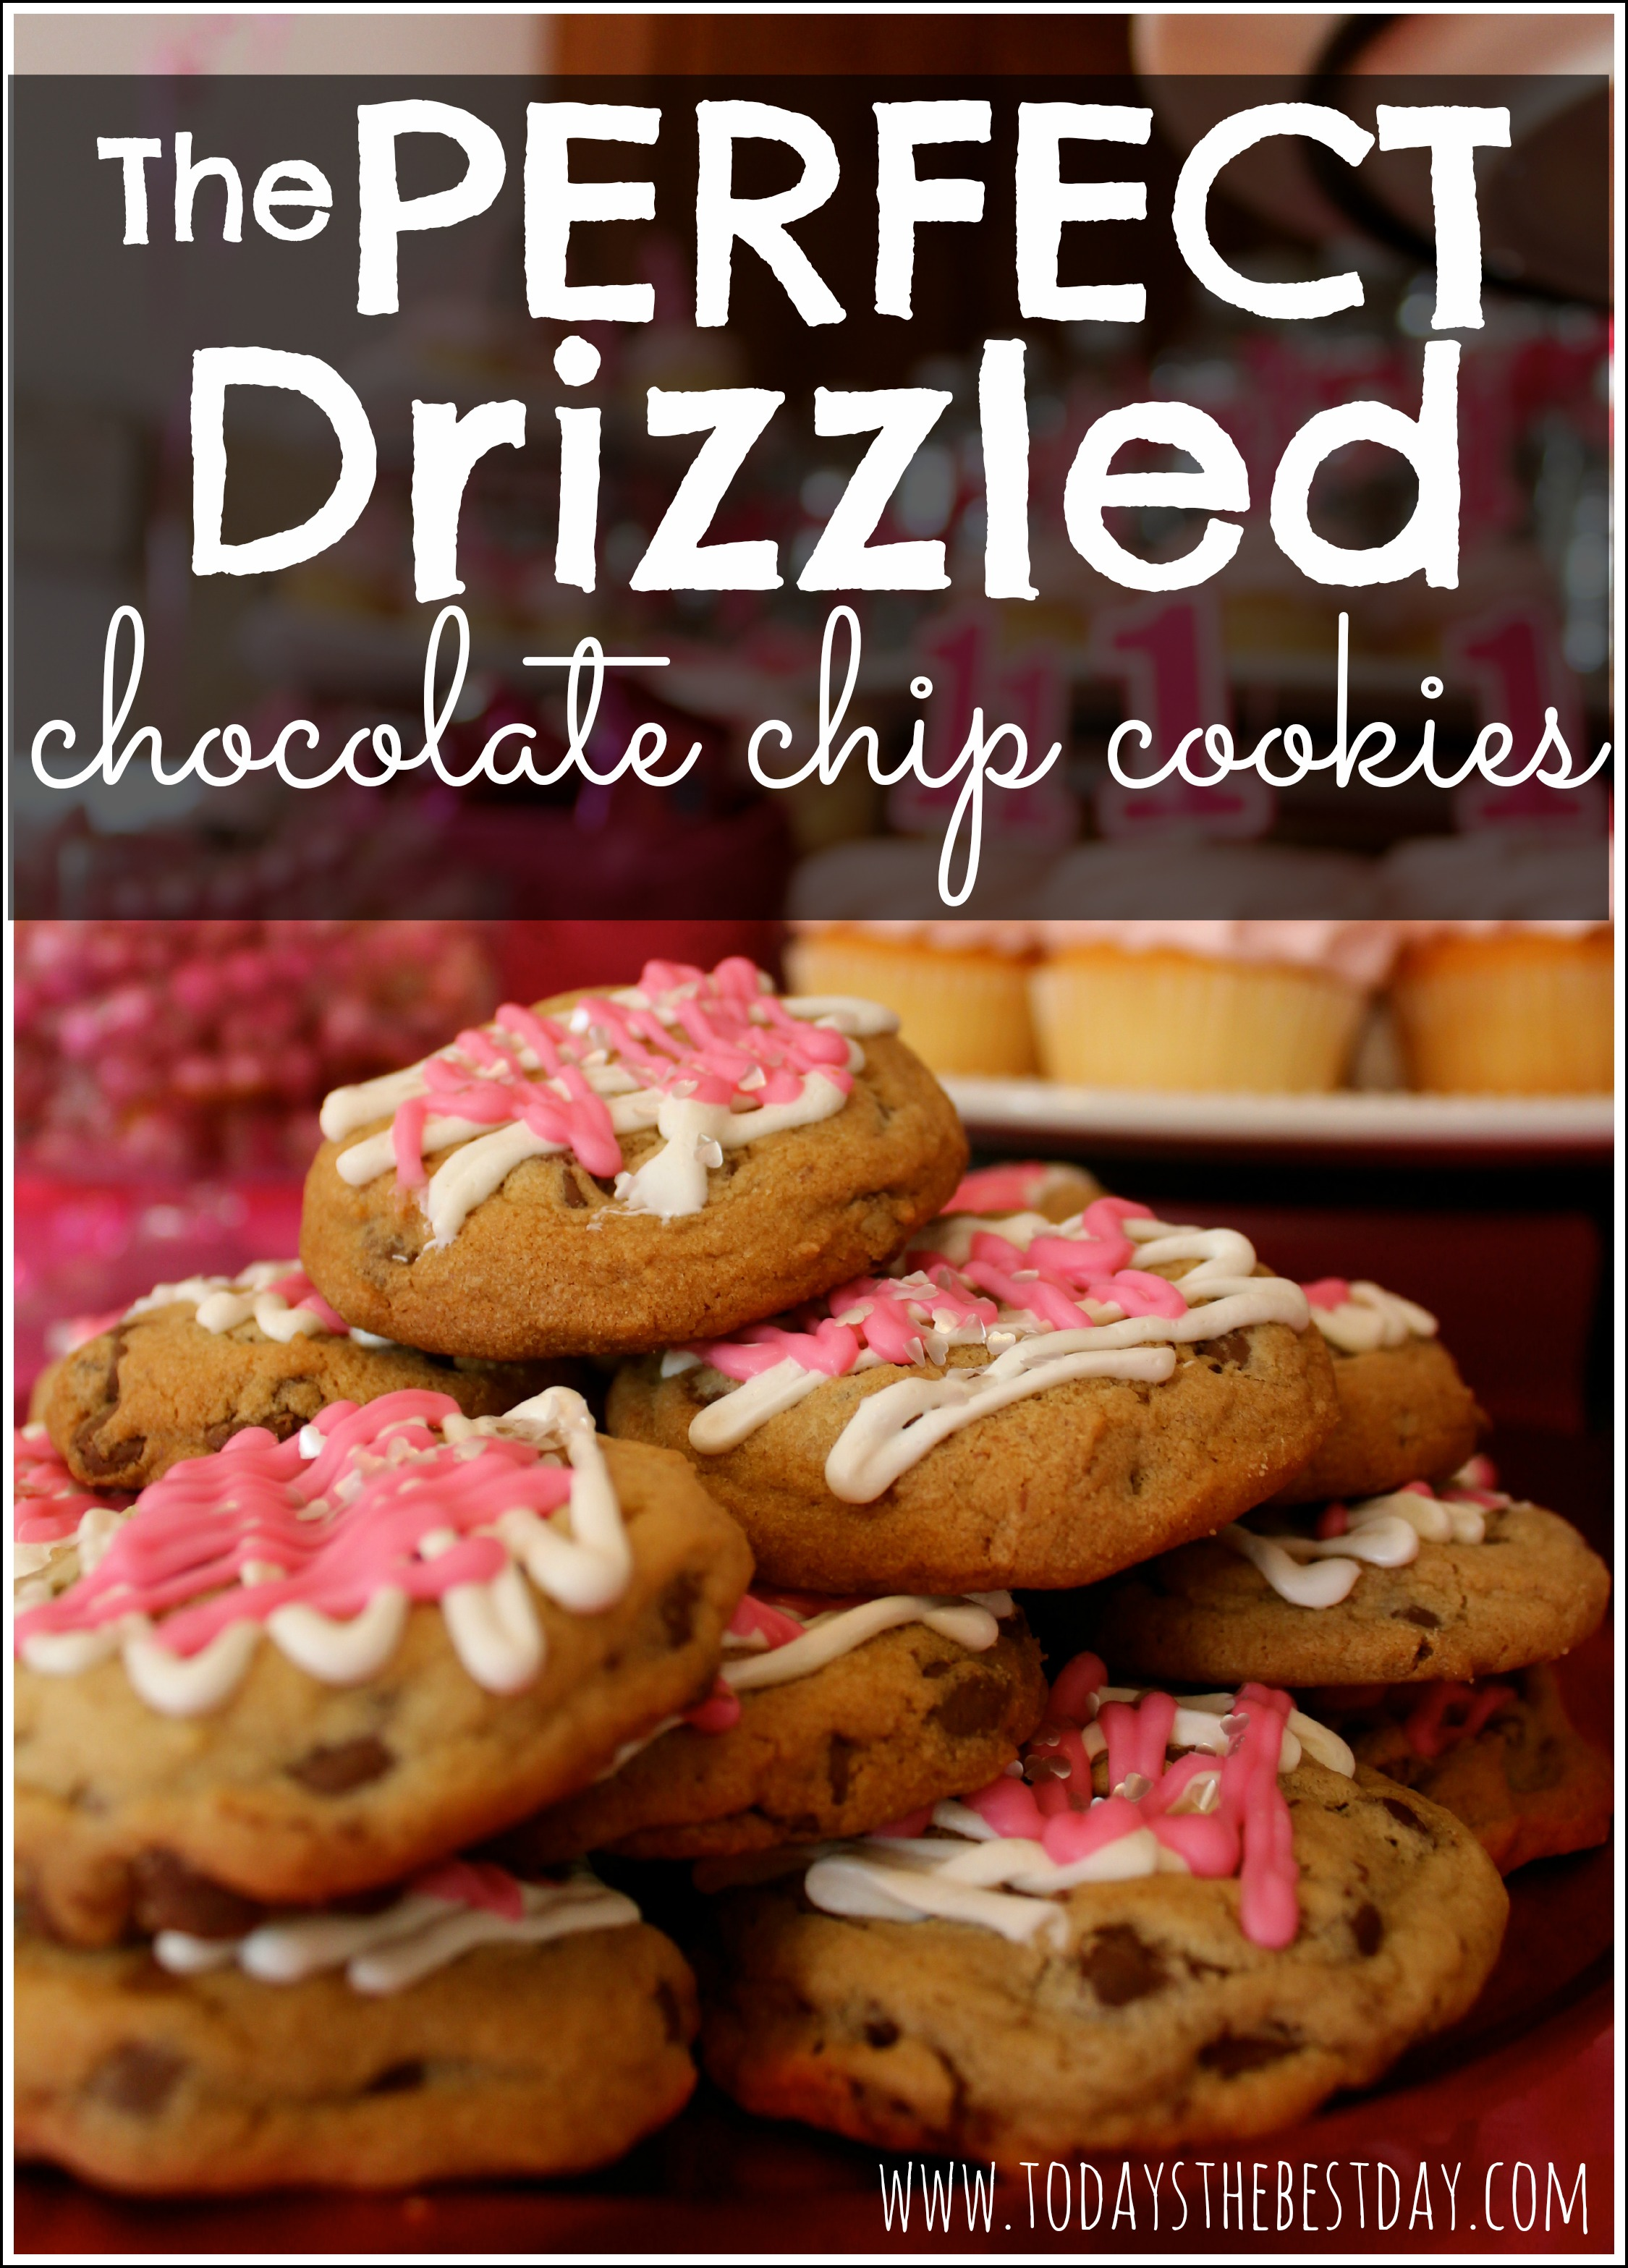 The PERFECT Drizzled Chocolate Chip Cookies - Today's the Best Day